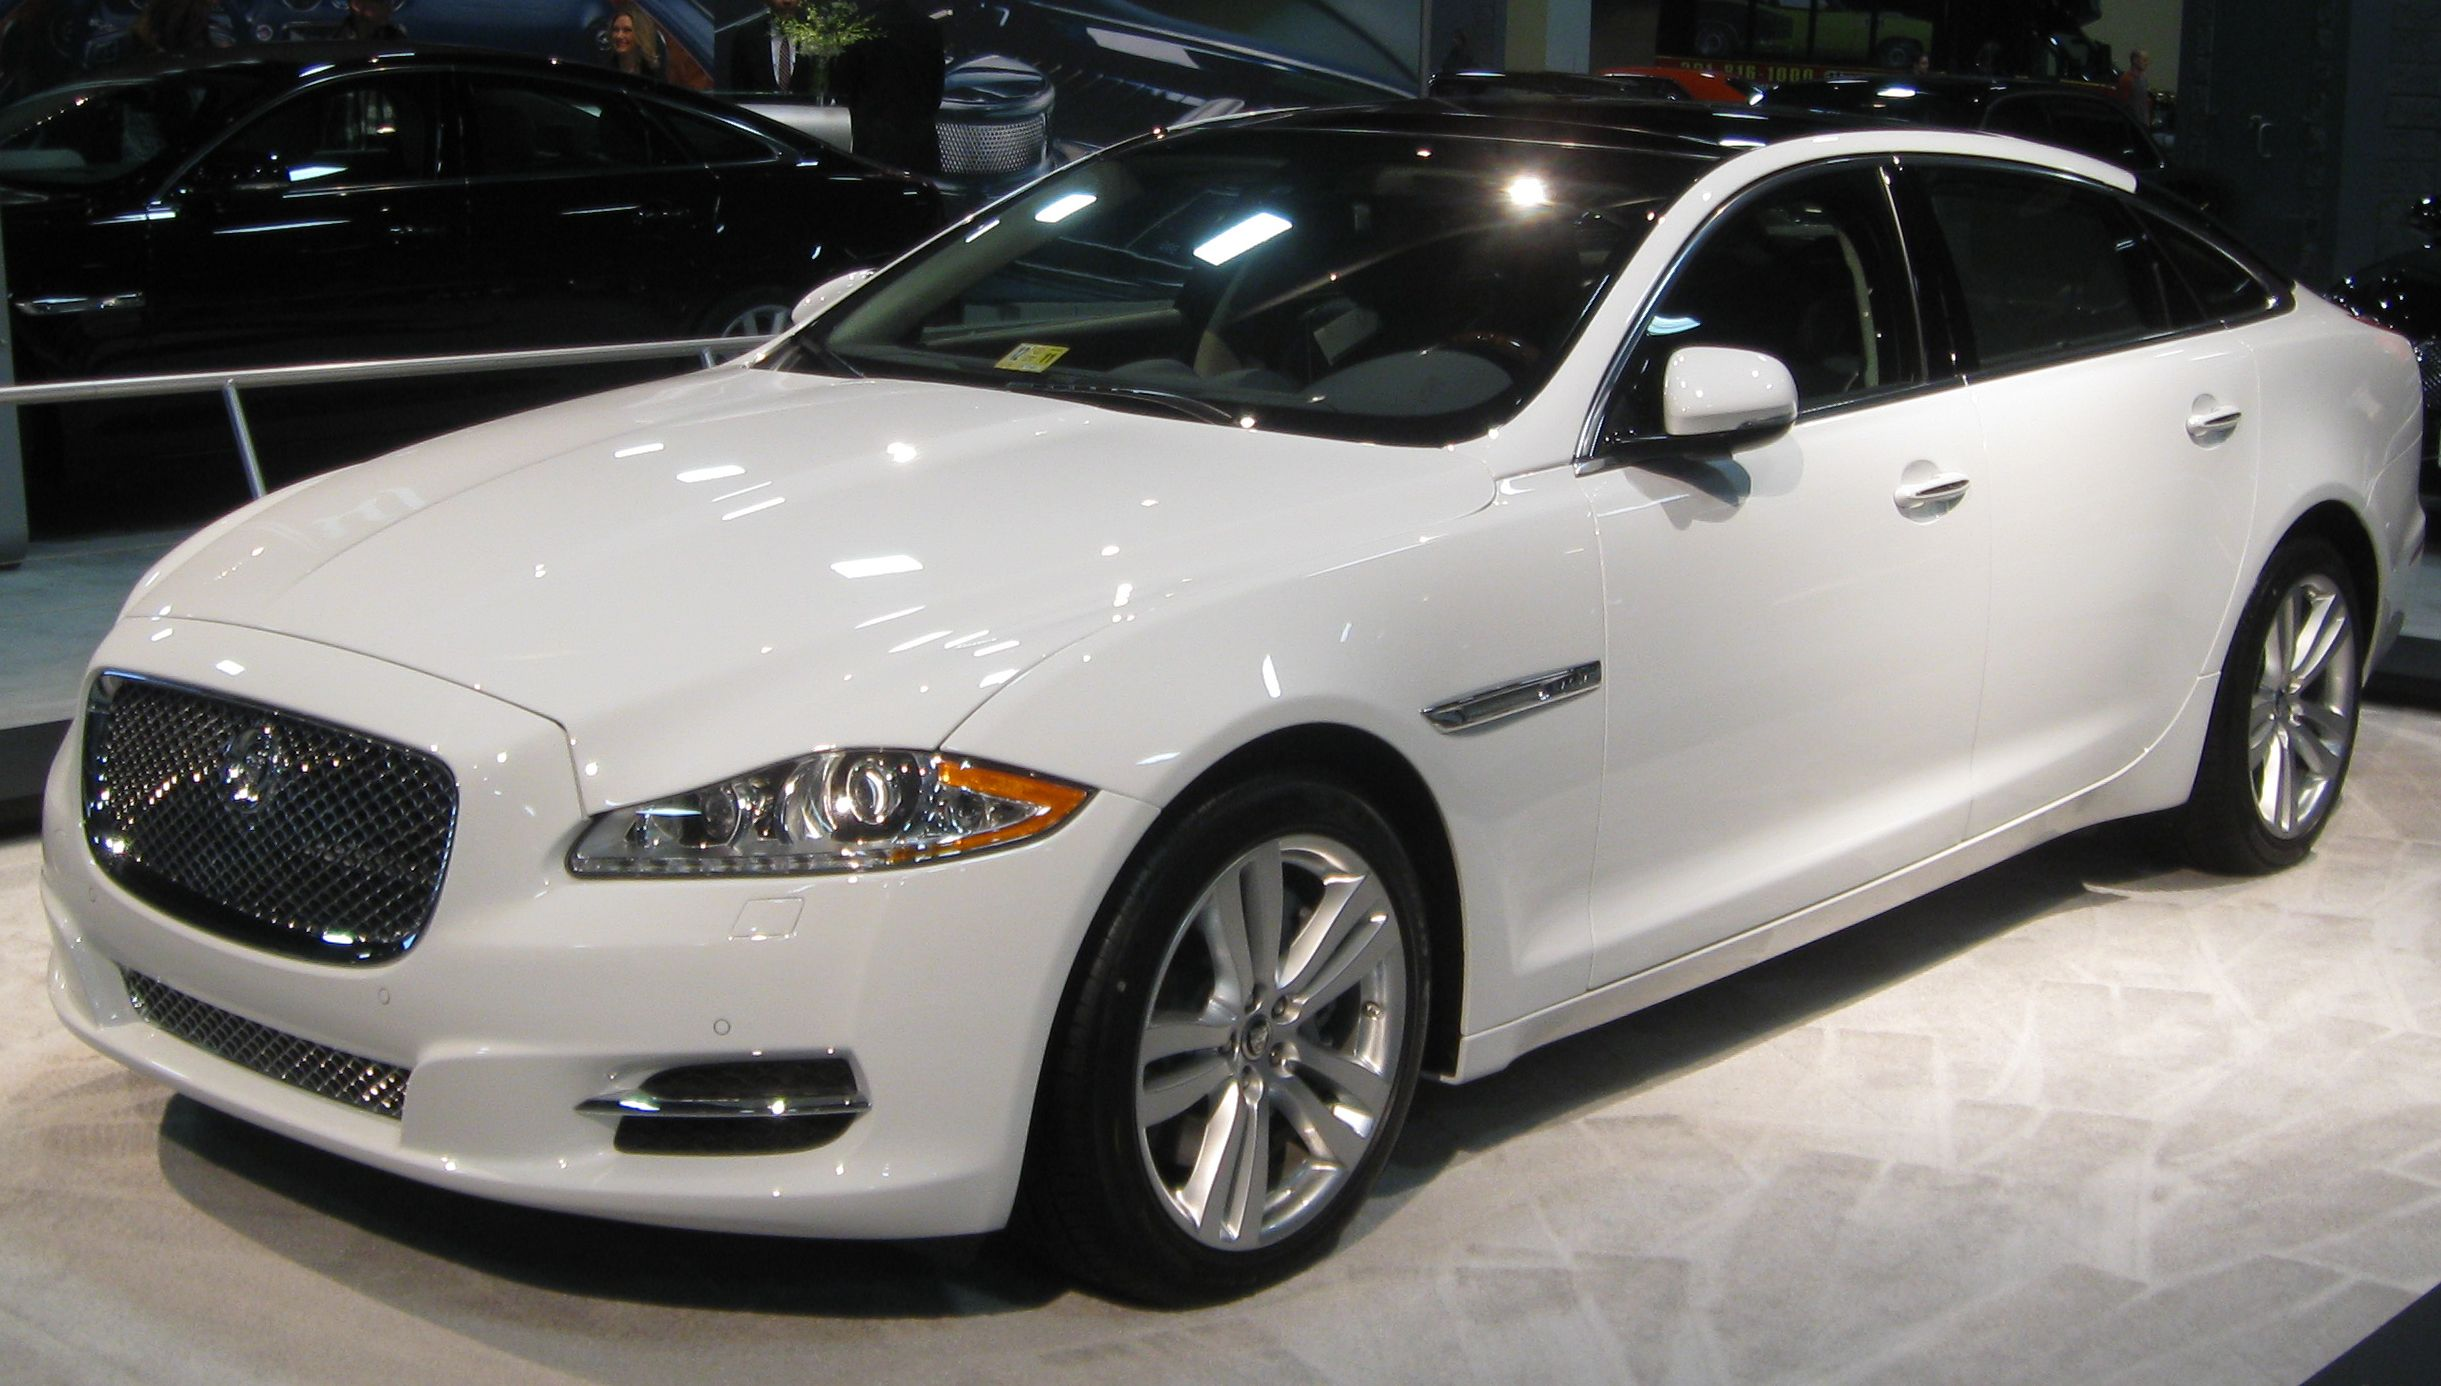 Jaguar Cars   Wikipedia, The Free Encyclopedia